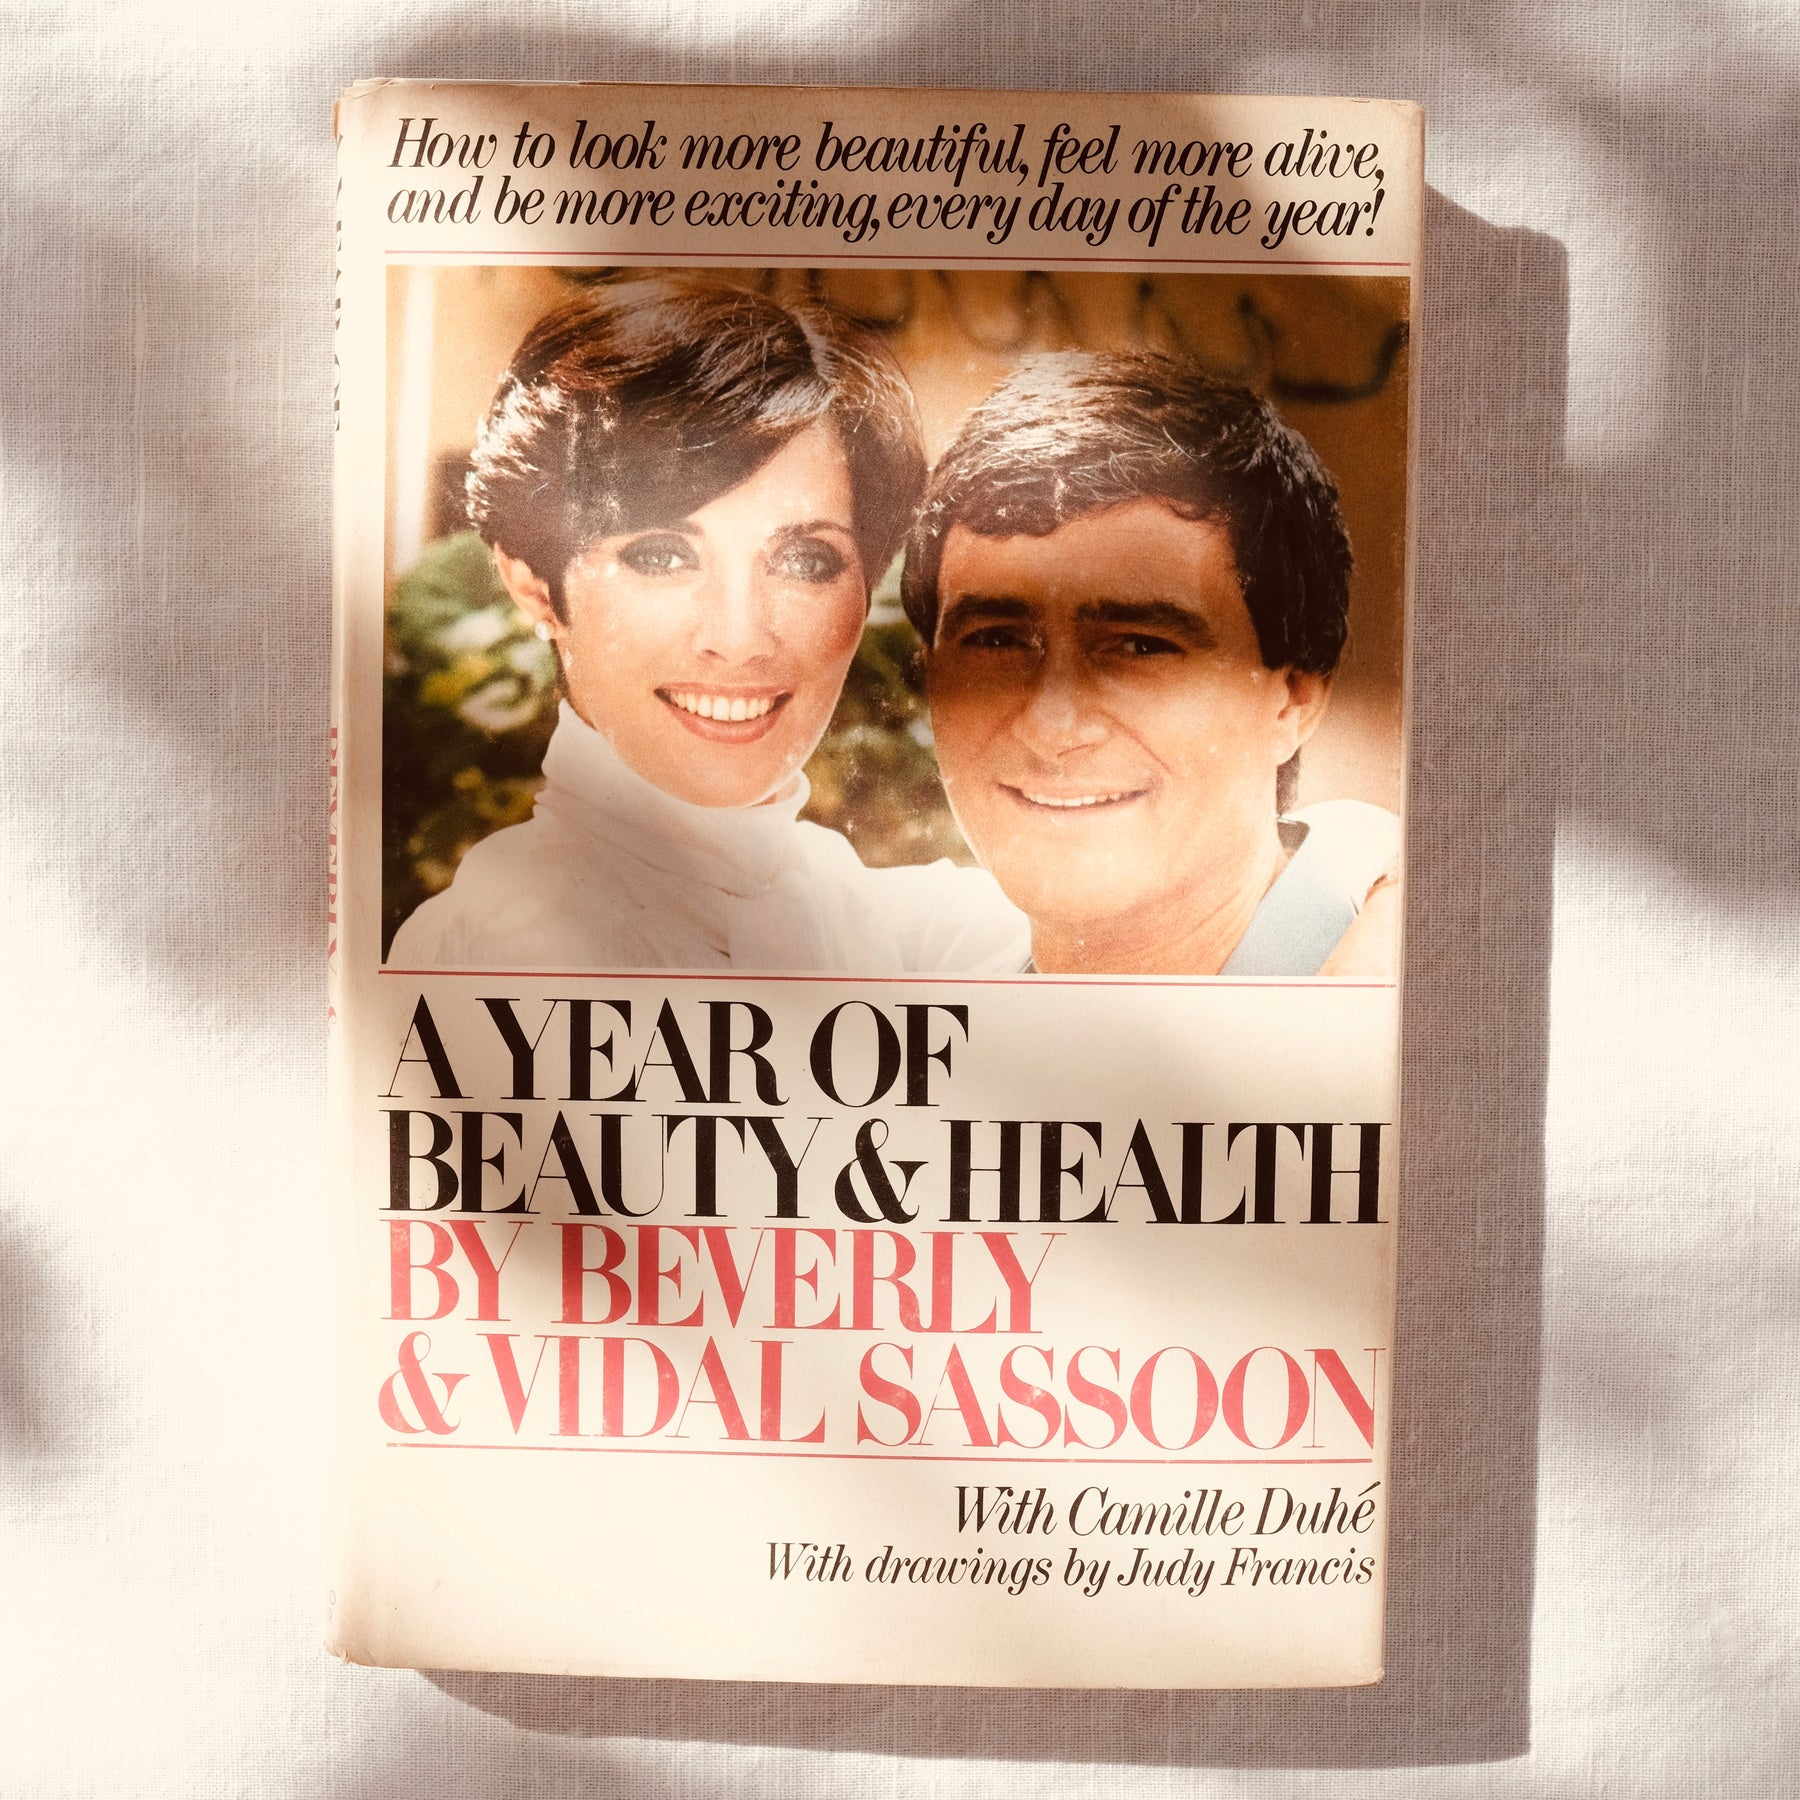 Load image into Gallery viewer, A YEAR OF HEALTH AND BEAUTY BOOK VIDAL SASSOON